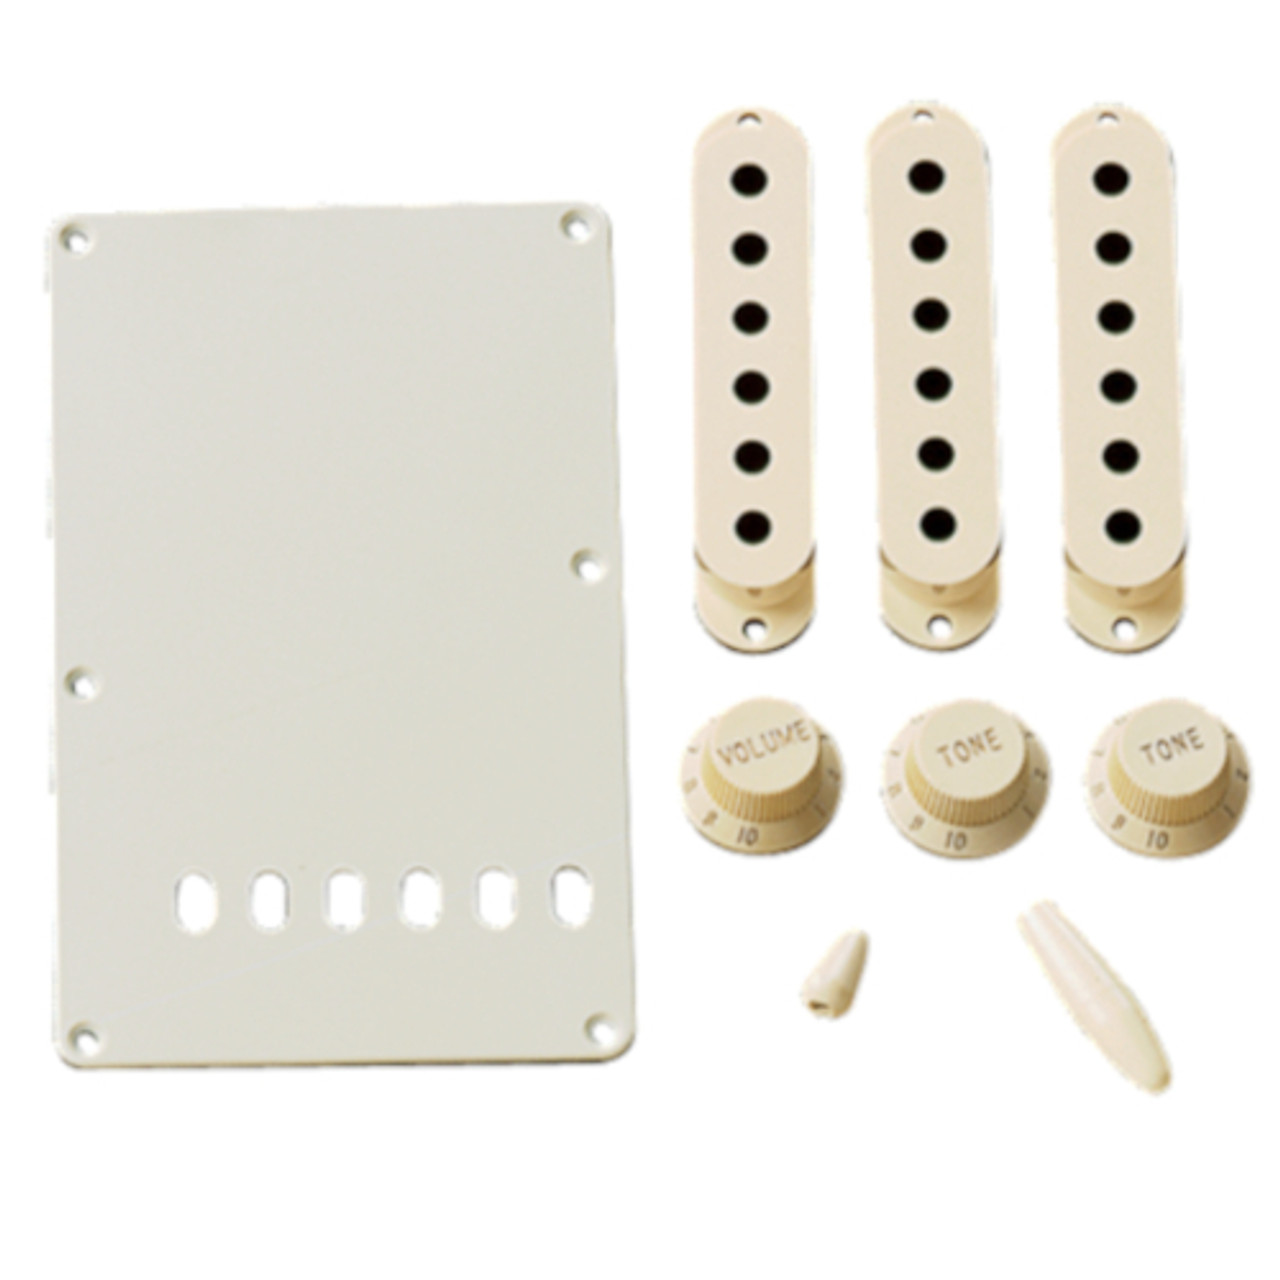 Original Fender Strat Accessory Kit - Aged